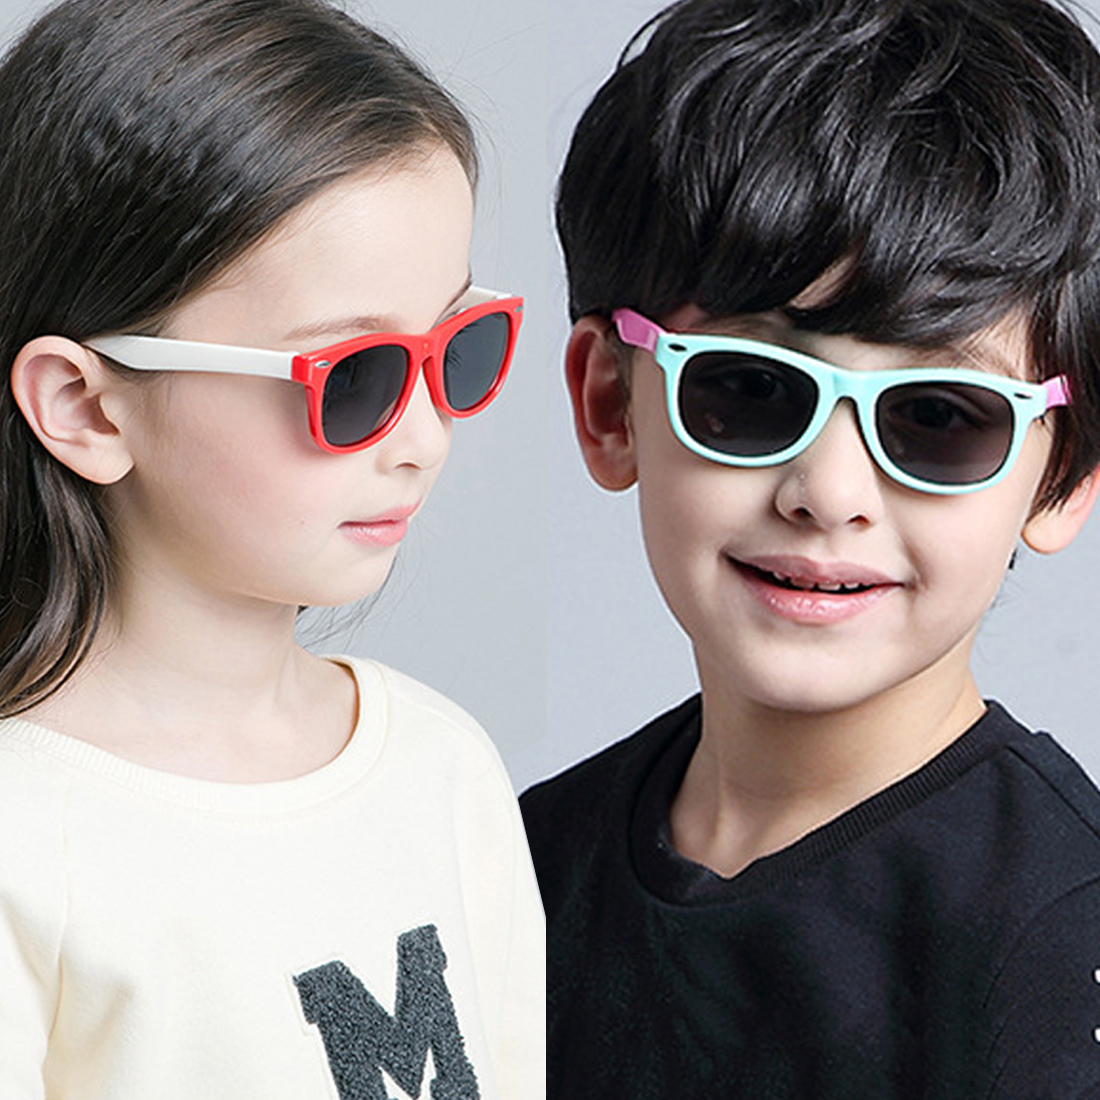 Rubber frame Polarized Kids Sunglasses with Case Boys Girls Silicone Safety Sun Glasses Gift For Children Baby UV400 Gafas in Sunglasses from Mother Kids